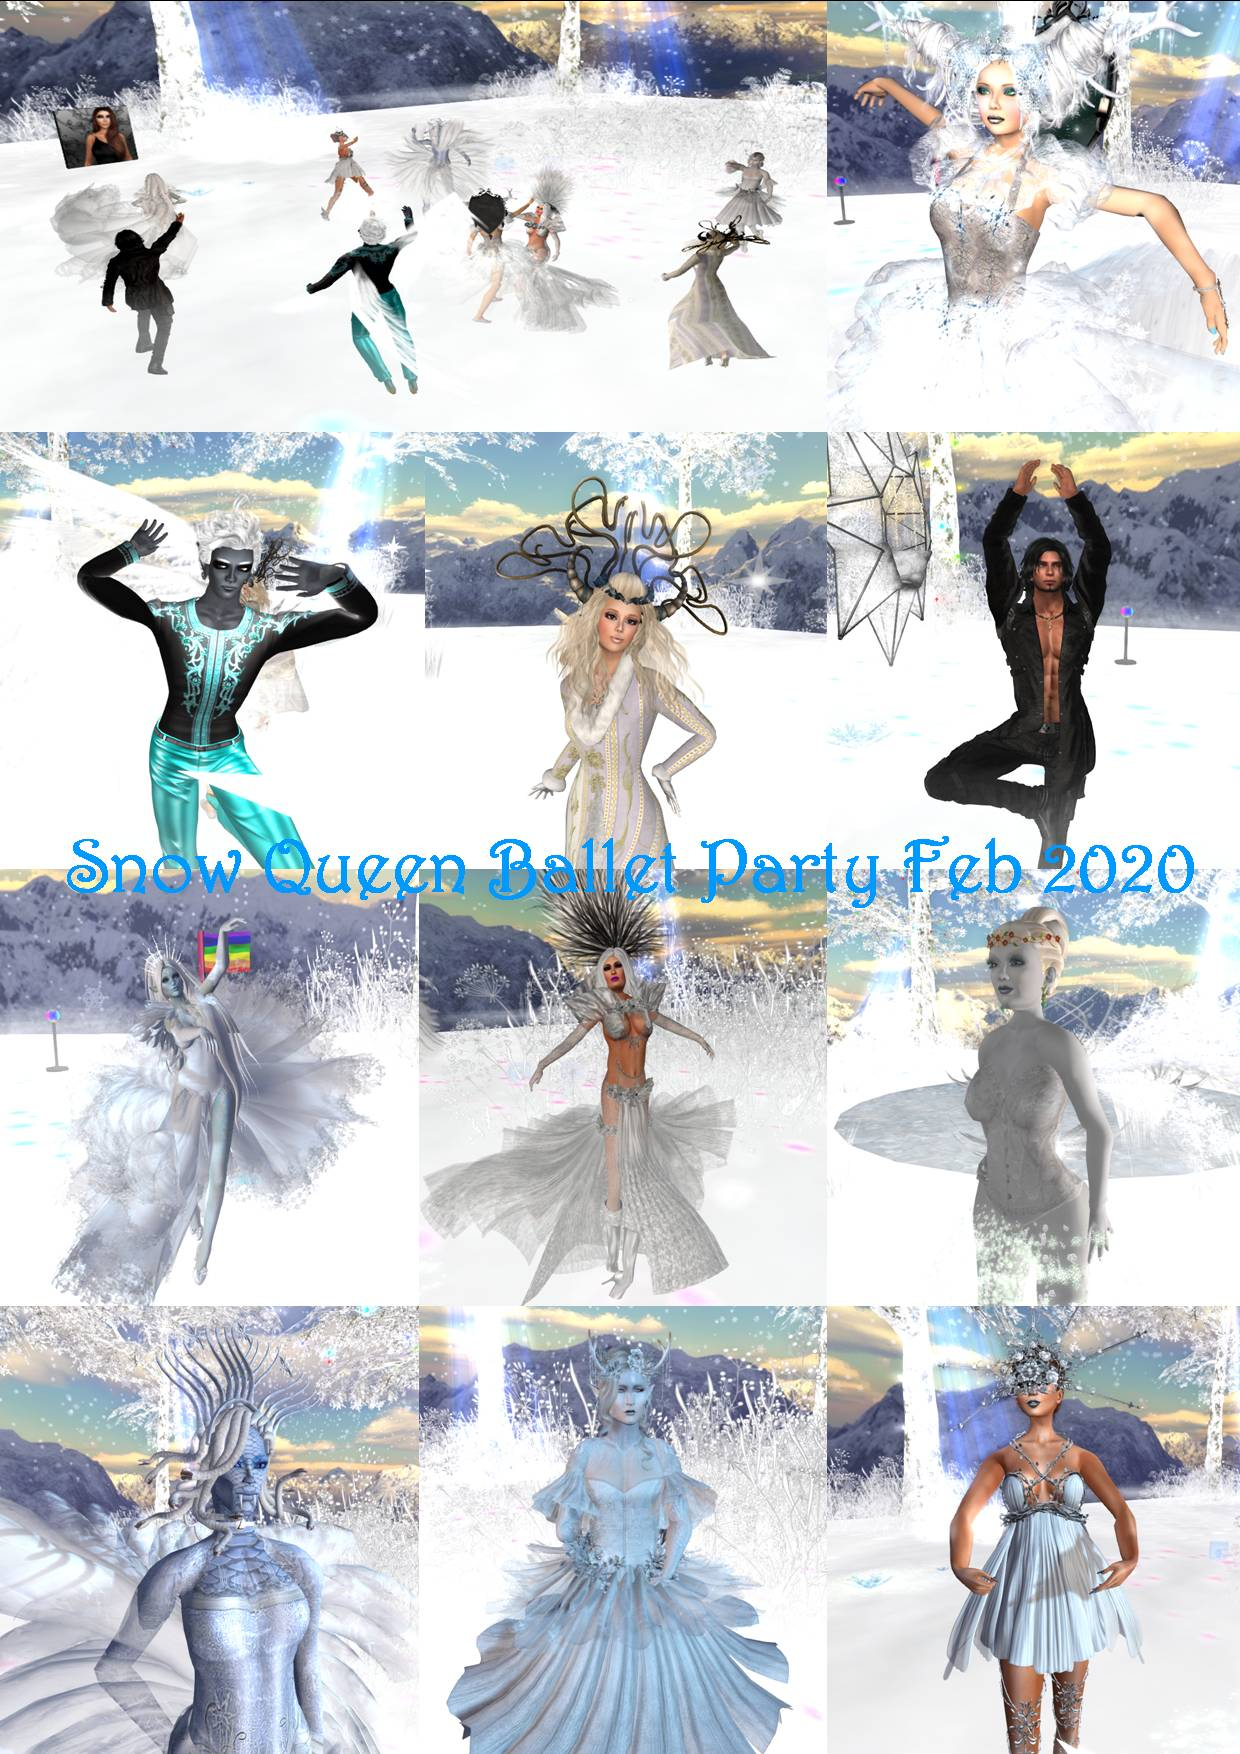 SNOW QUEEN PARTY COLLAGE FEB 2020